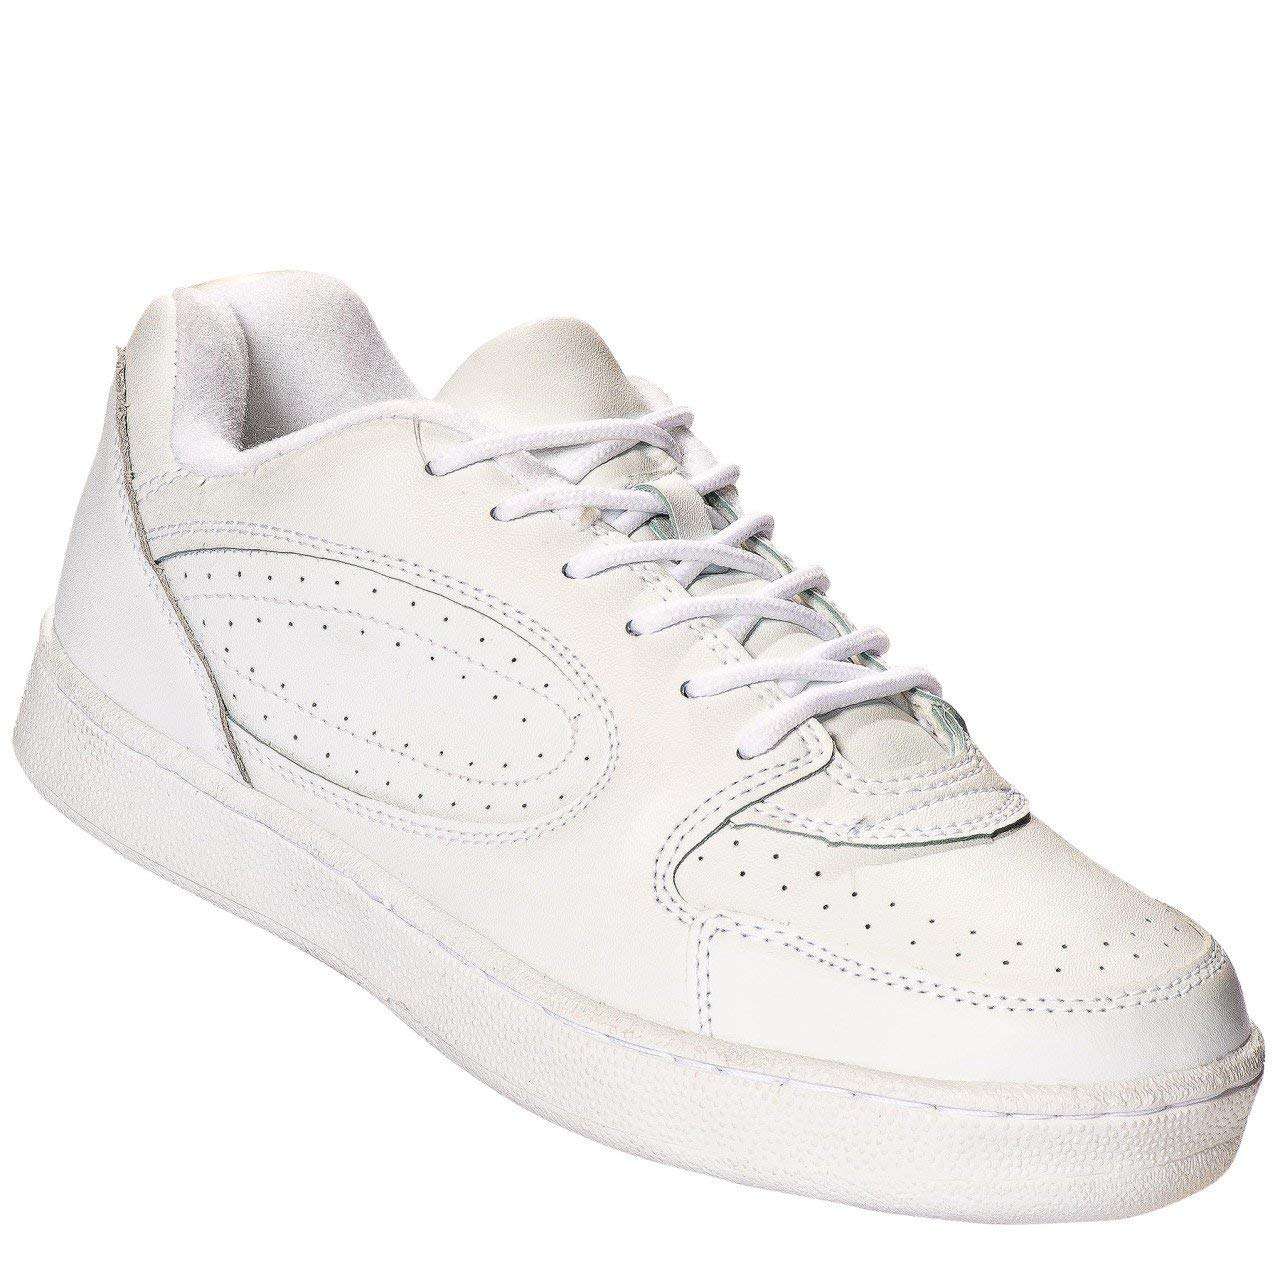 Mens 7 Womens 9 Mens or Womens White Lace Sneaker Shoe-Wide